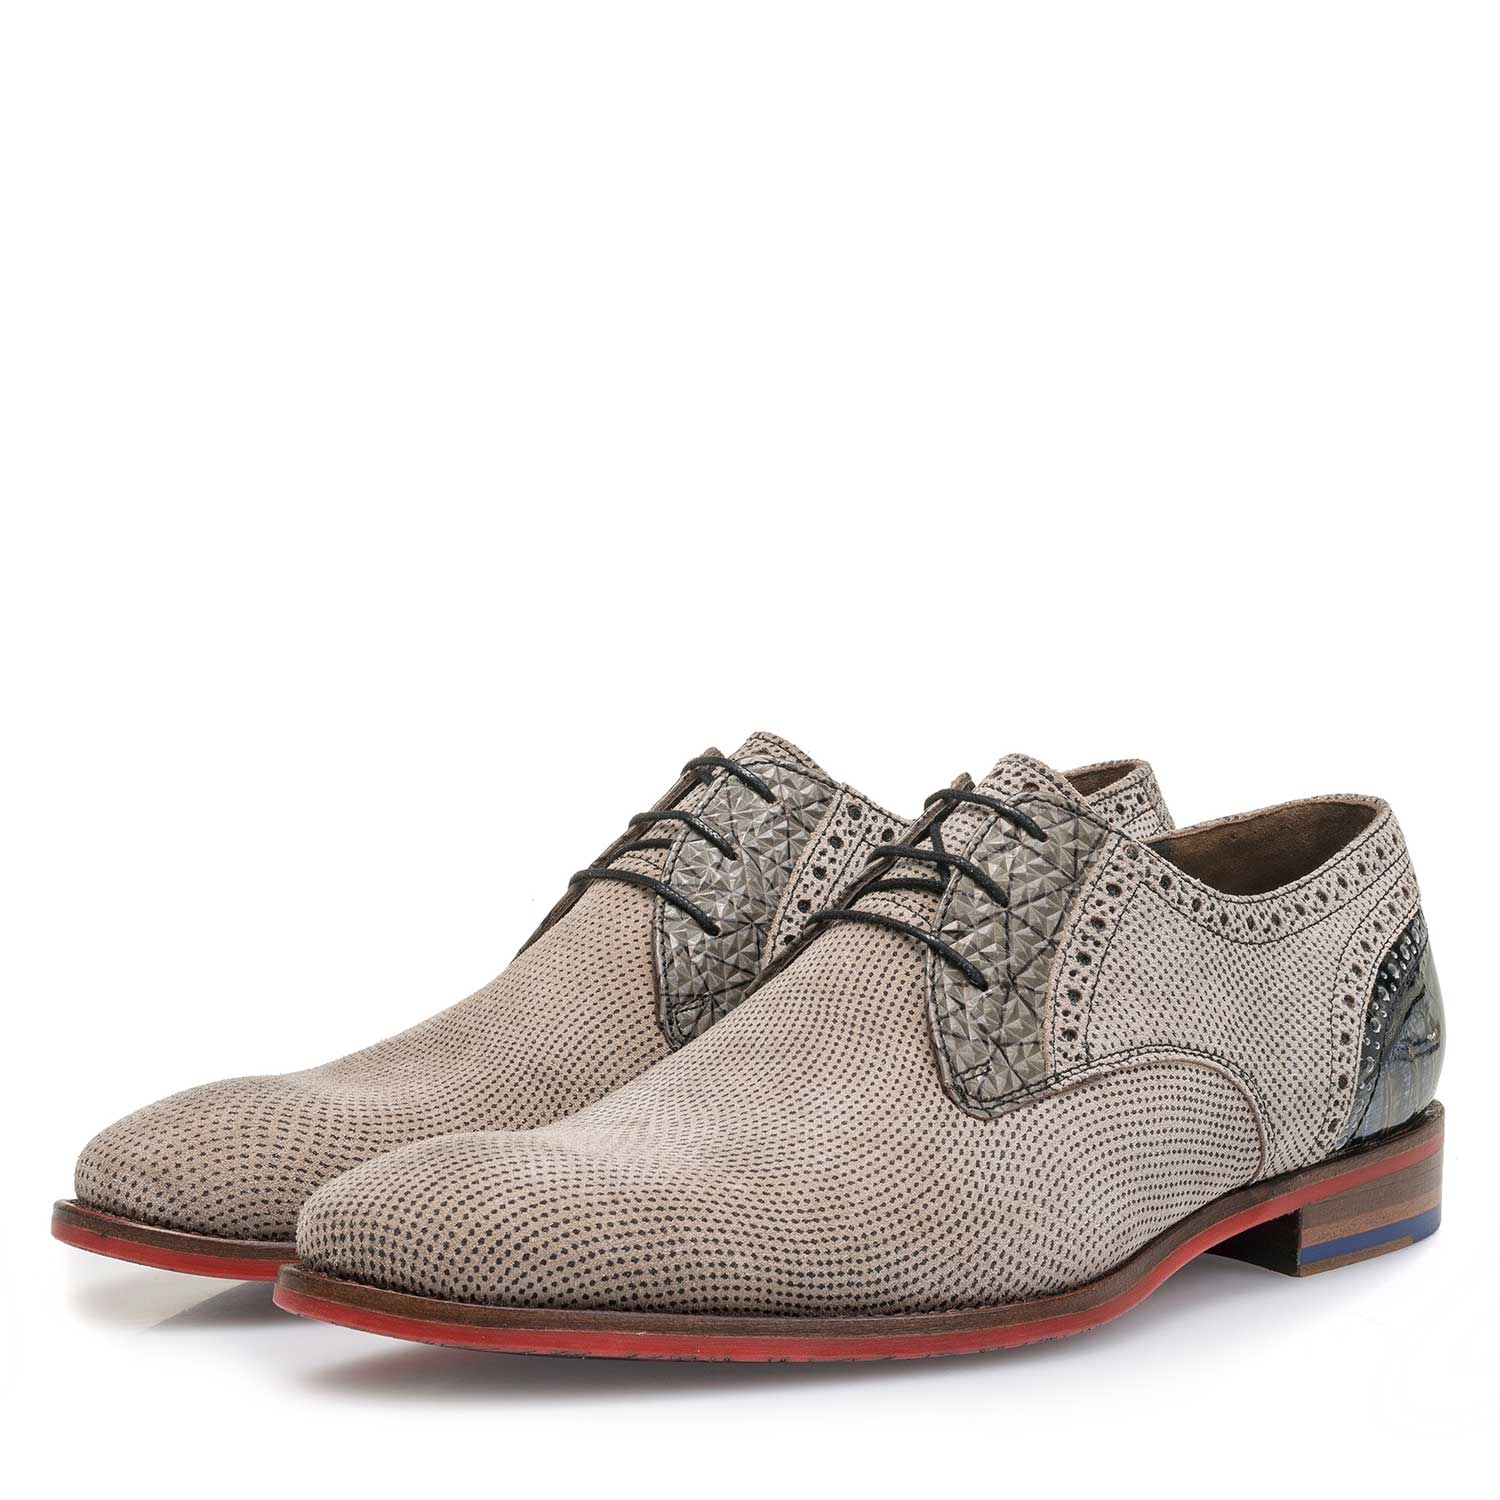 18104/02 - Taupe-coloured printed suede leather lace shoe